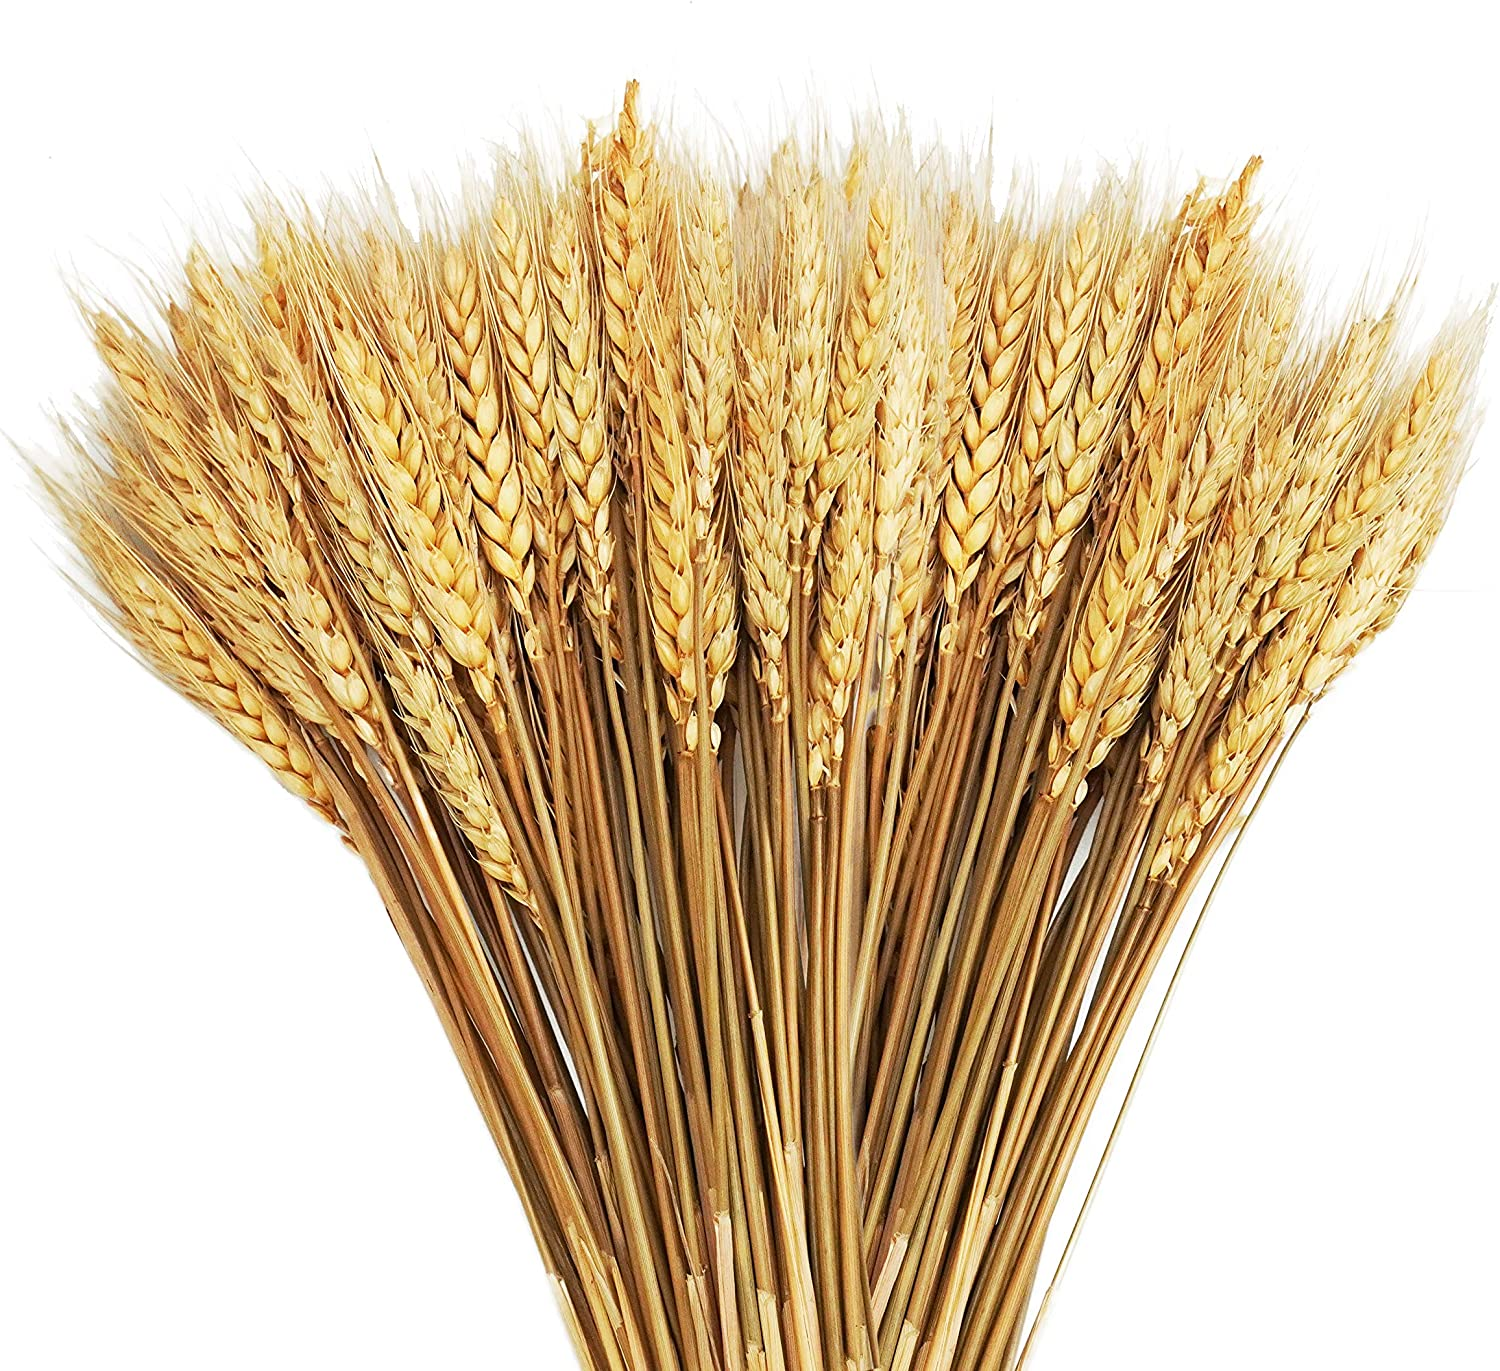 20.5 Inches Dried Wheat Stalks, Uieke 100 Stems Dried Flowers 100% Natural Wheat for Home Décor Kitchen Wedding Table Centerpiece Farmhouse Vase DIY Decoration